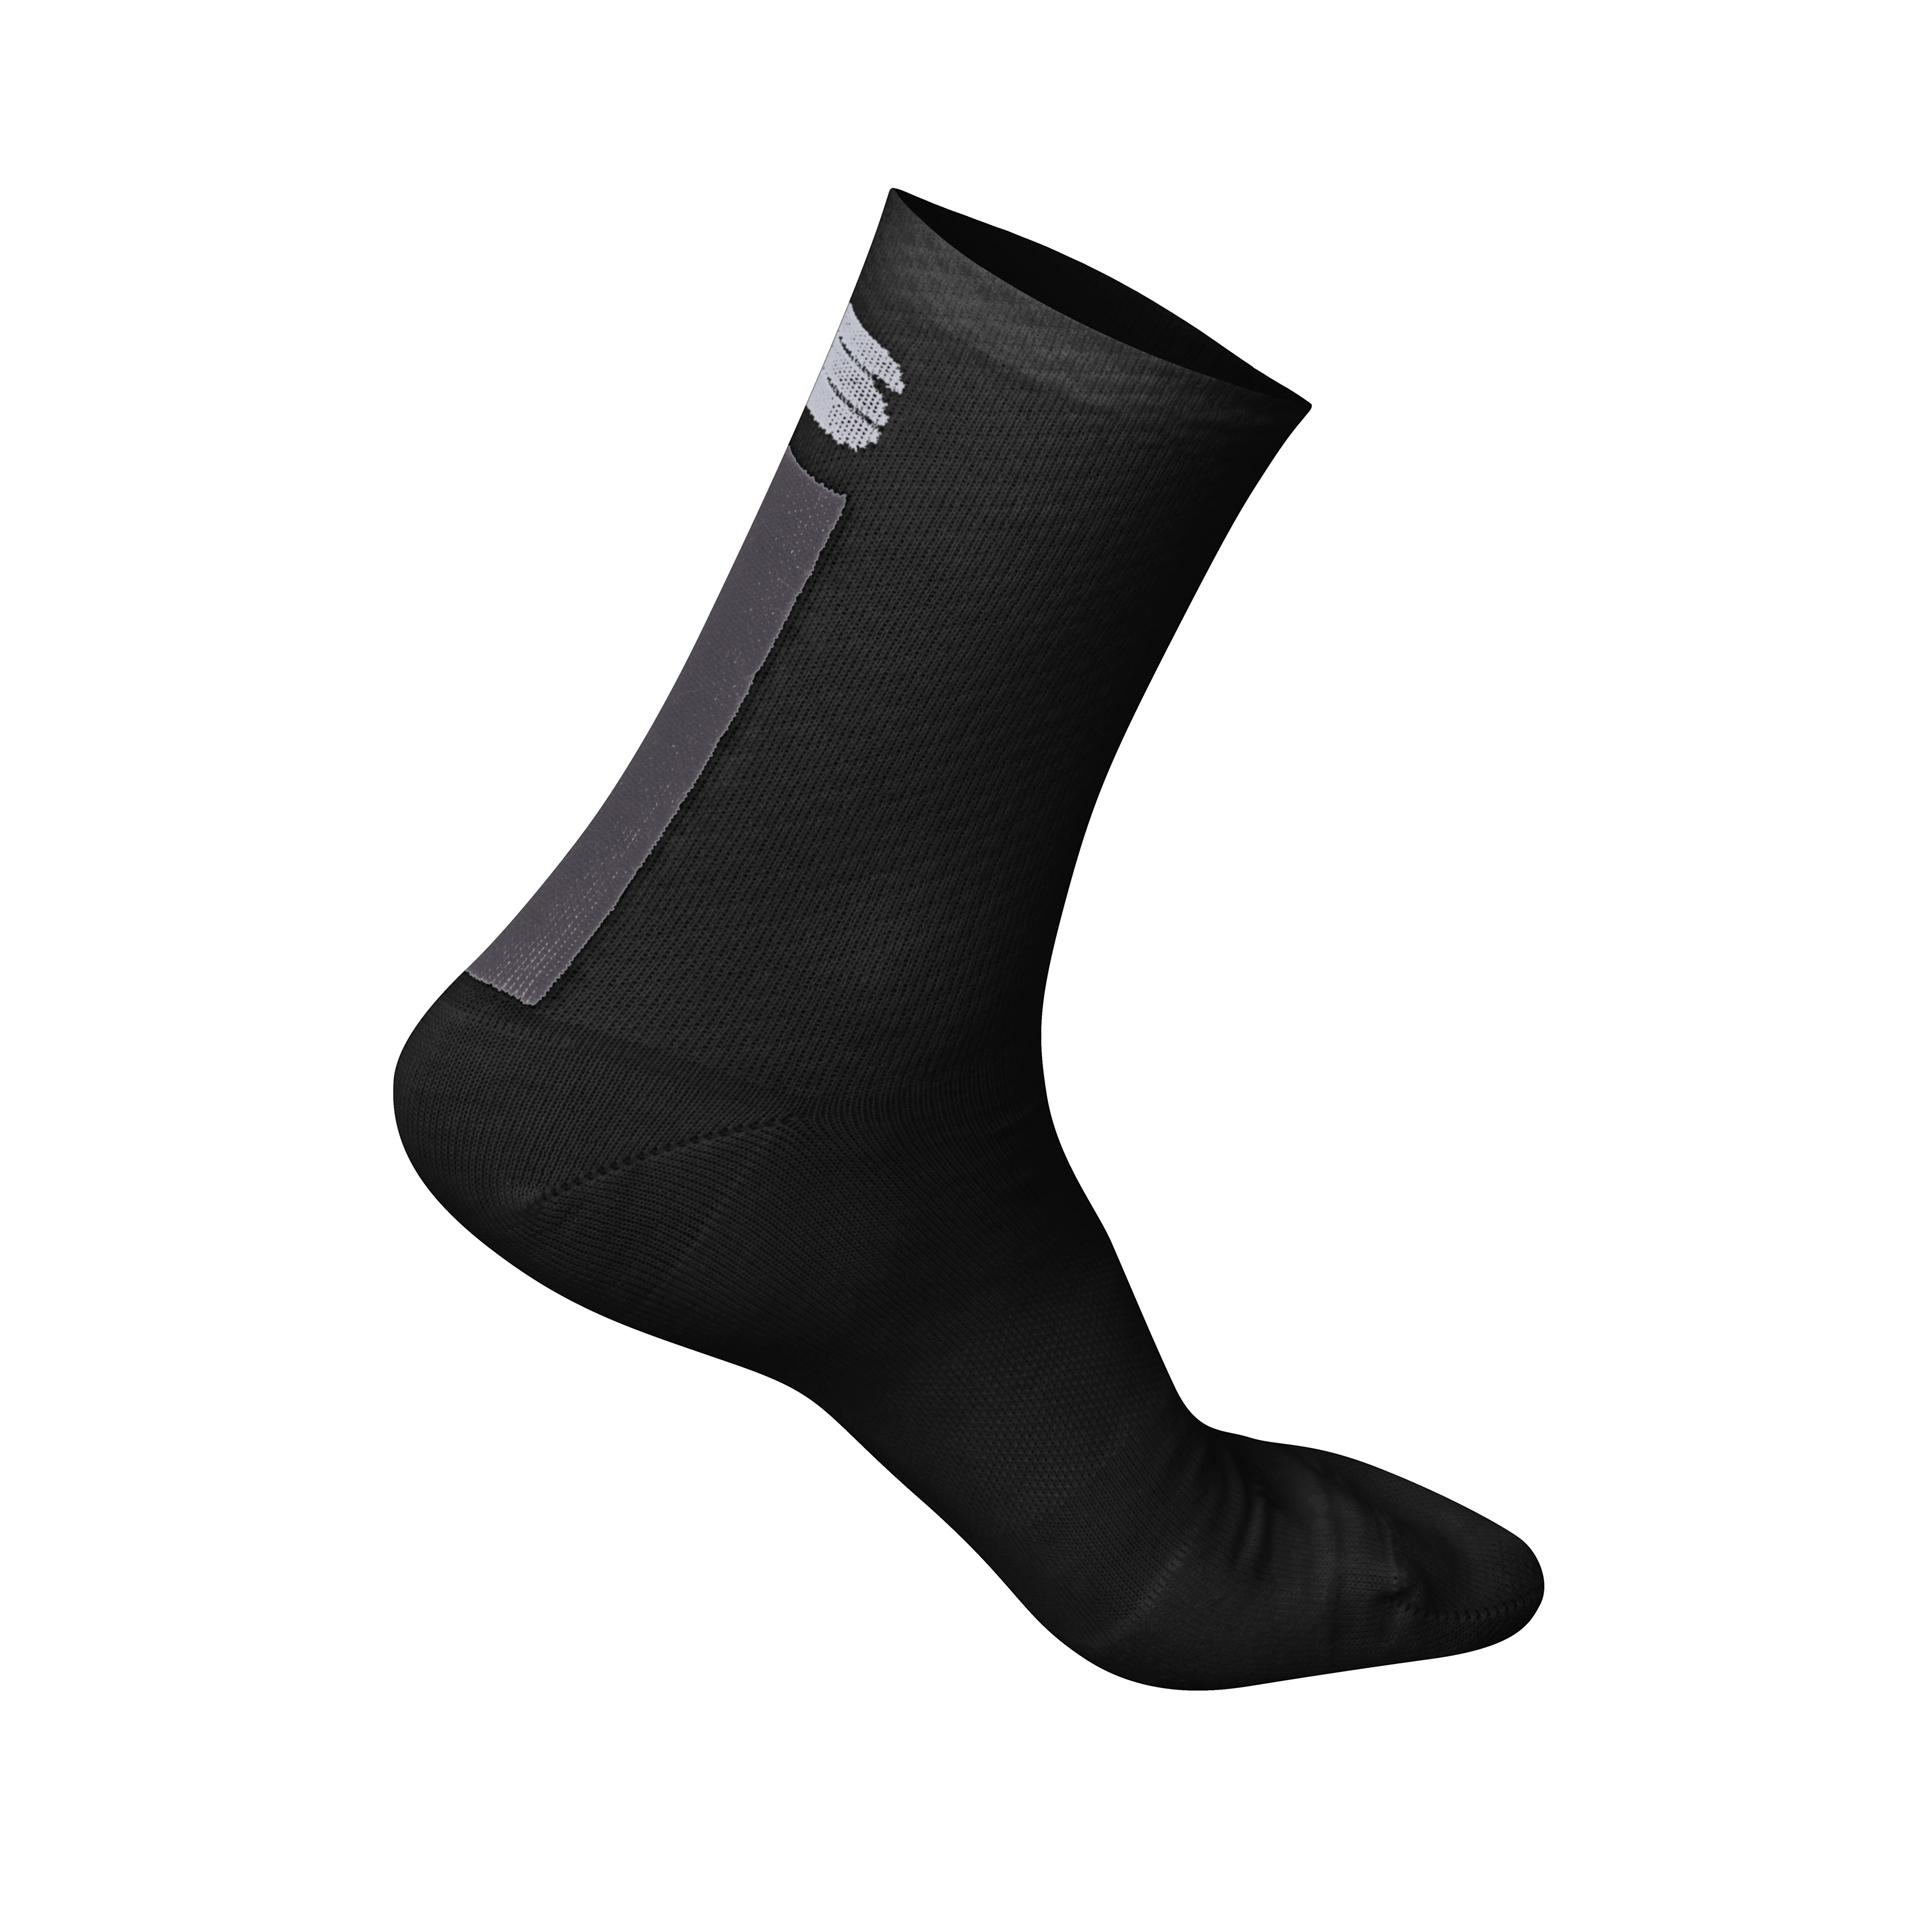 Sportful Fietssokken winter Dames Zwart Grijs / Wool W 16 Sock-Black/Anthracite